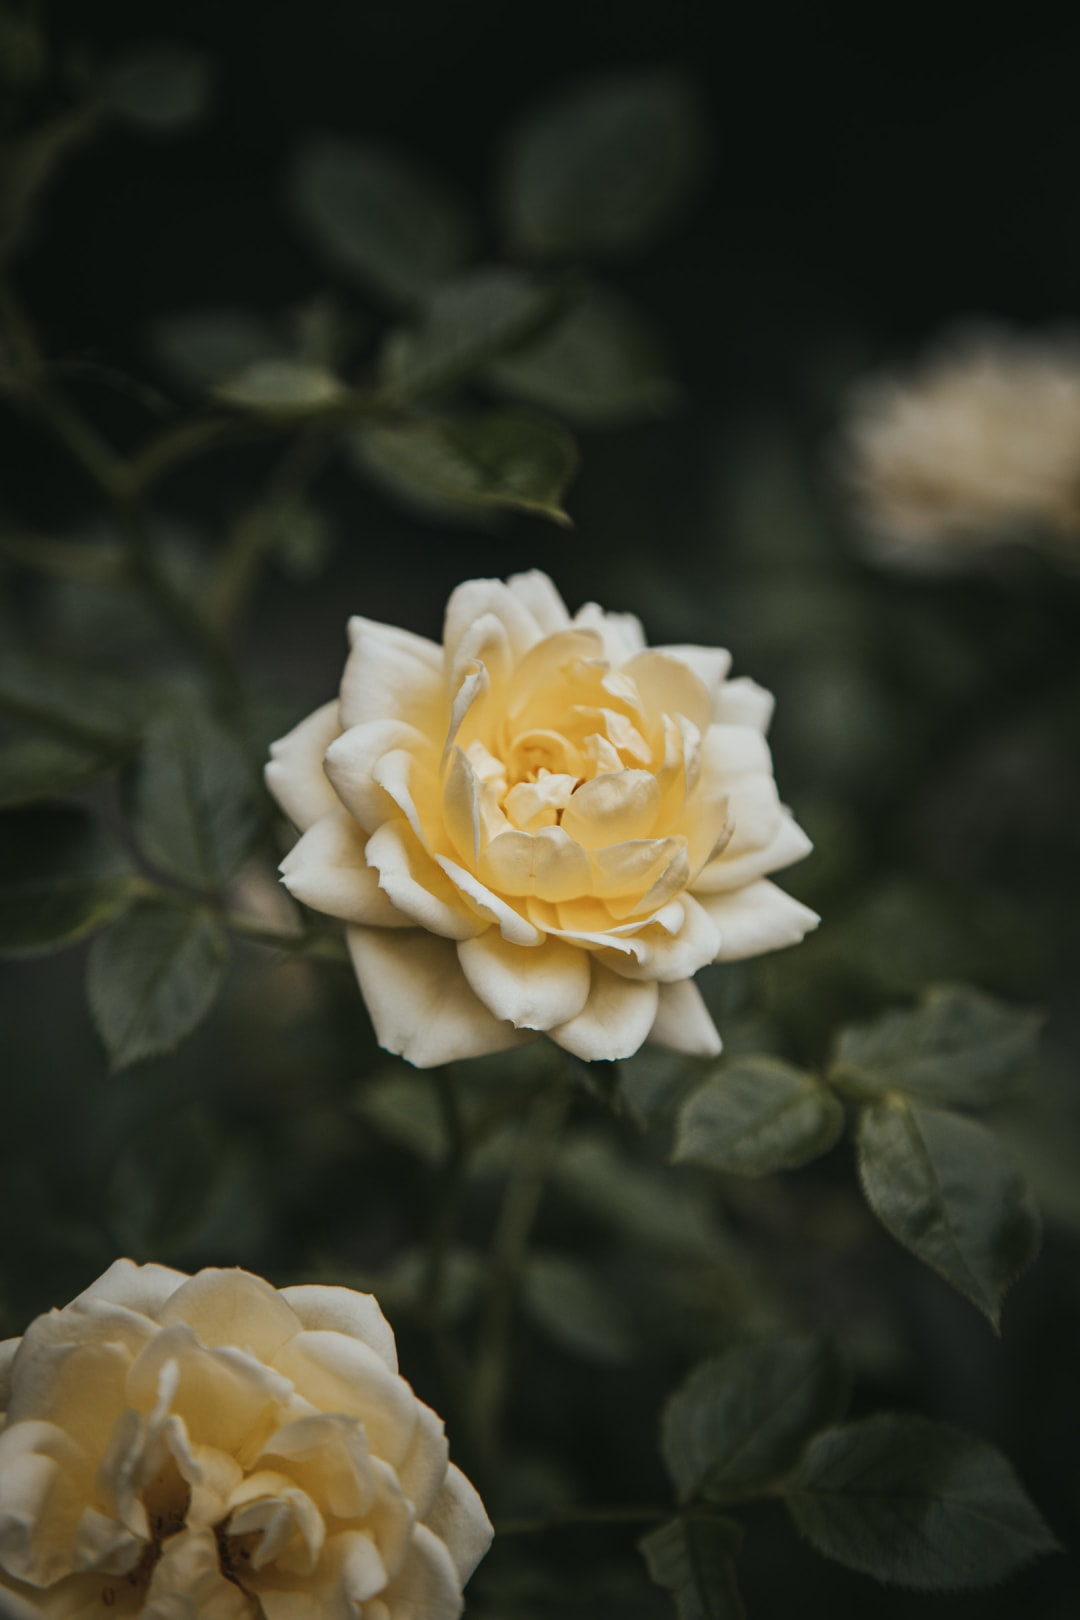 A blooming pastel yellow rose from a patio rose bush.